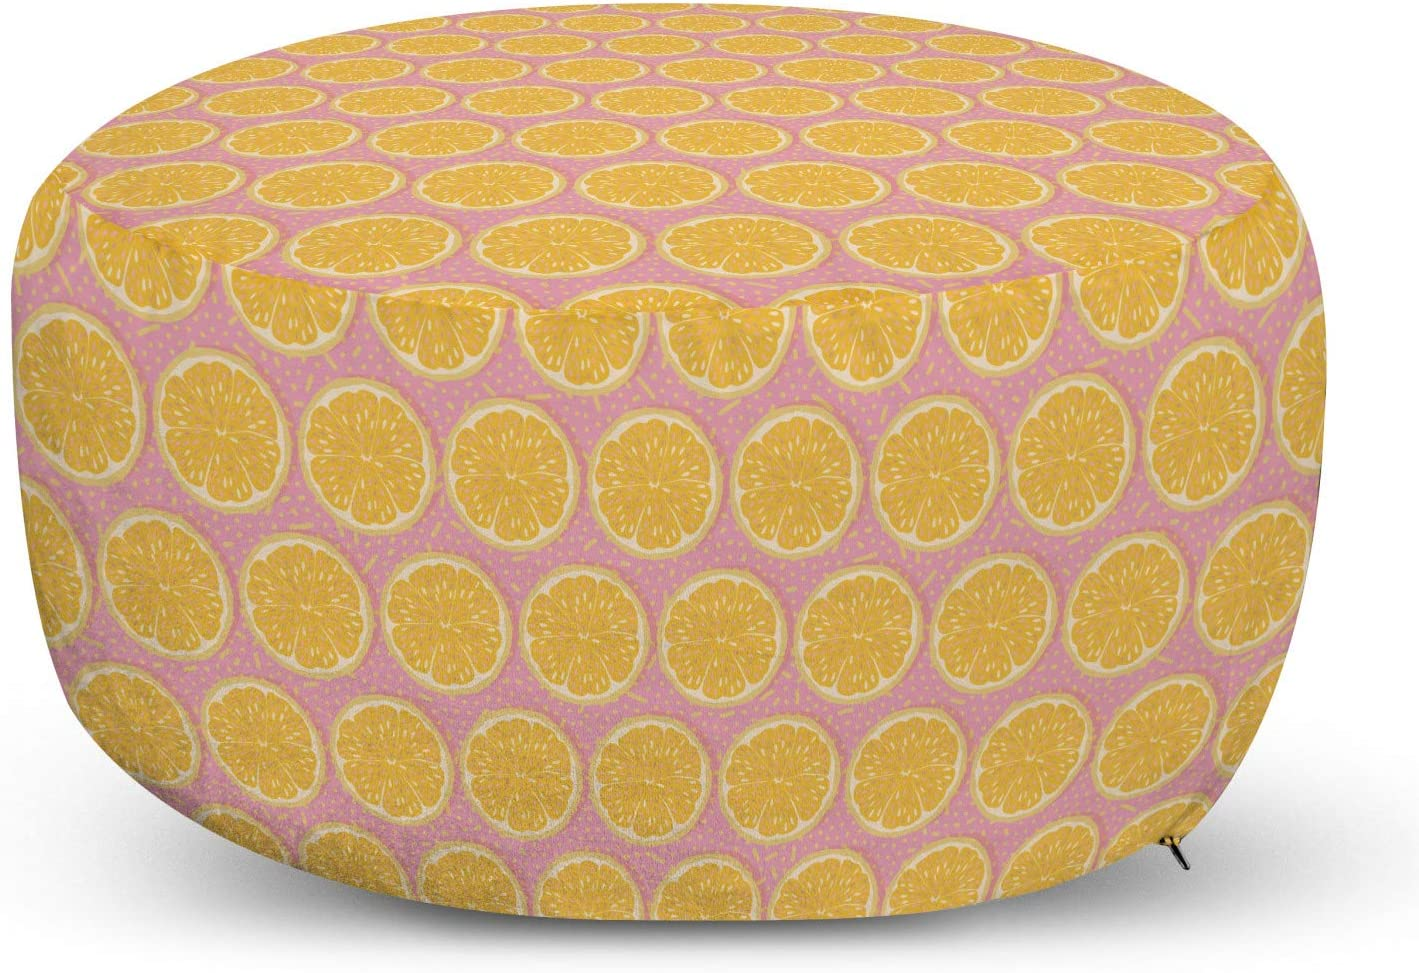 Lunarable Fruit Pouf Cover ! Super beauty product restock quality top! with Repeated Slices Max 50% OFF Orange Zipper a